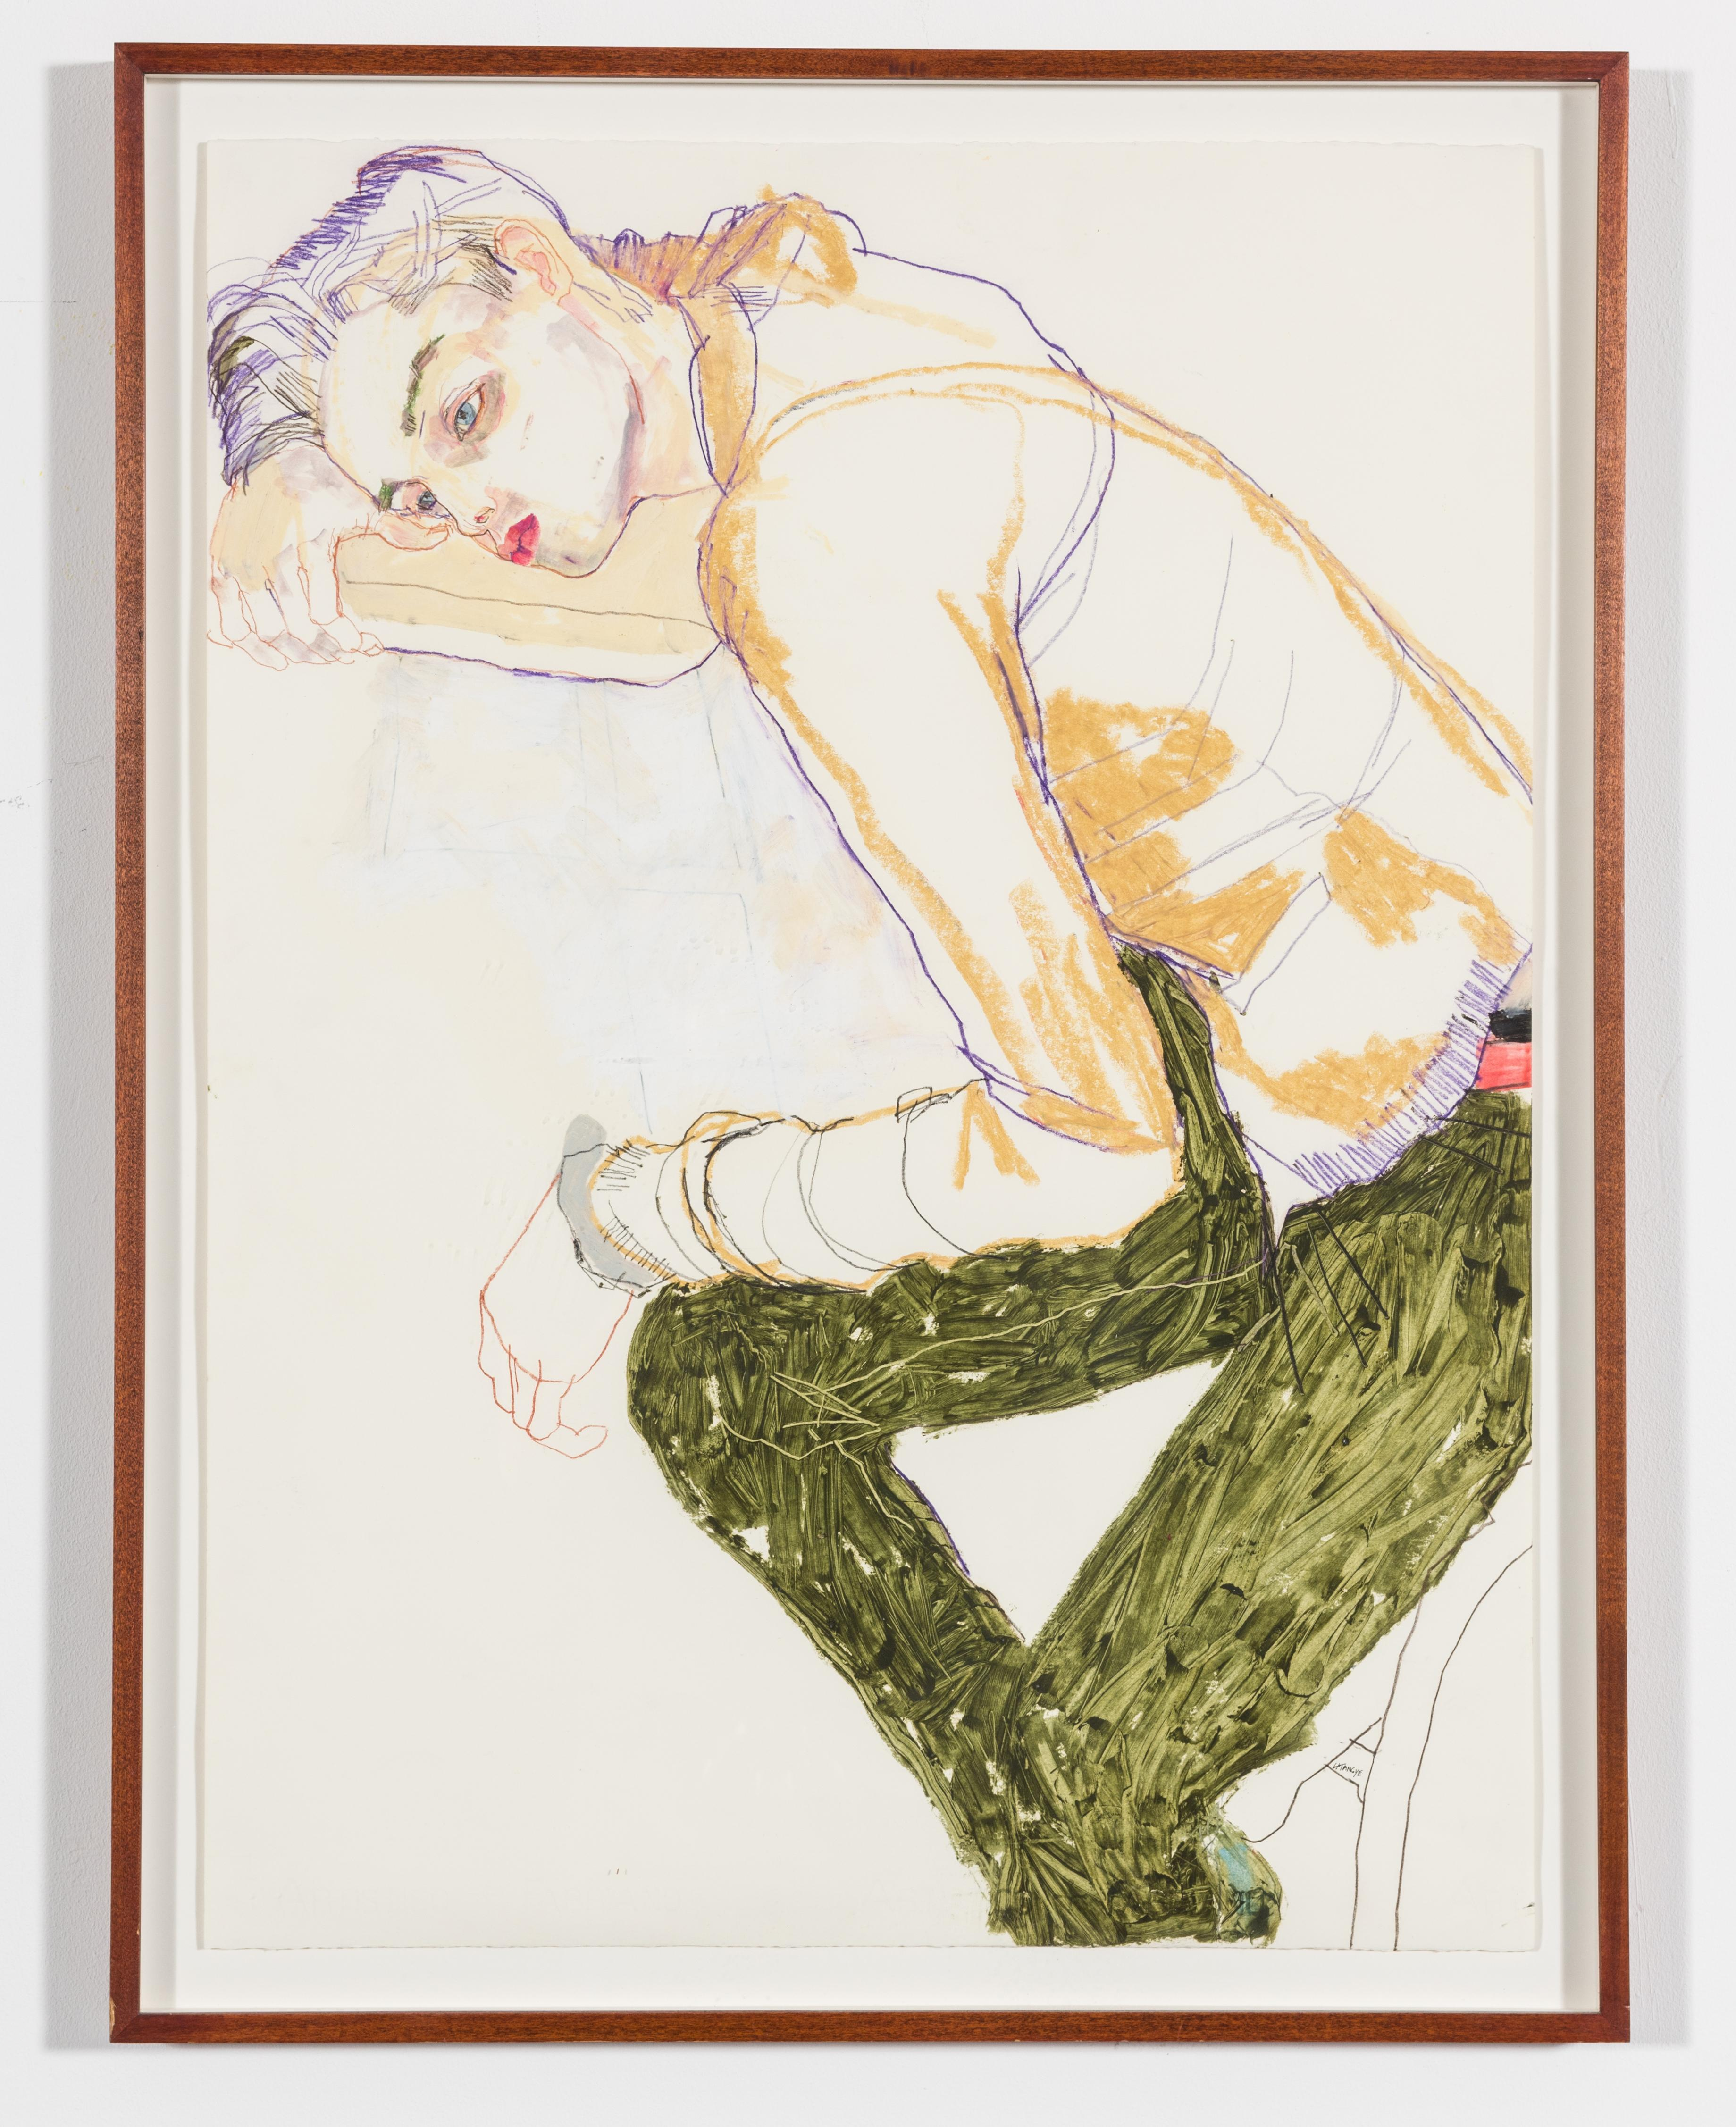 Jake W. (Before Paris II), Mixed media on Fabriano paper